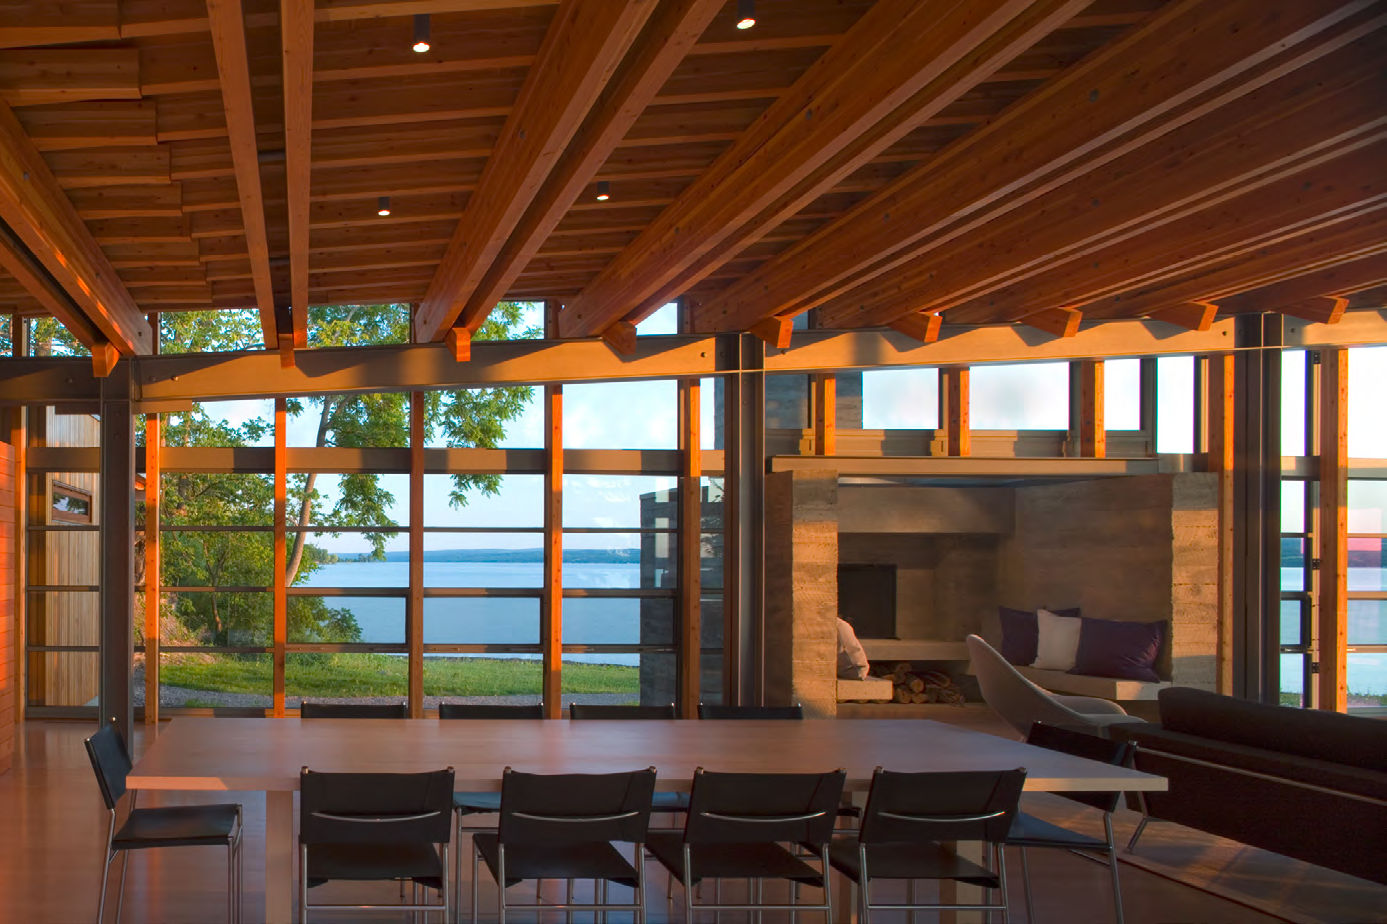 Interior of the Combs Point Residence by Bohlin Cywinski Jackson